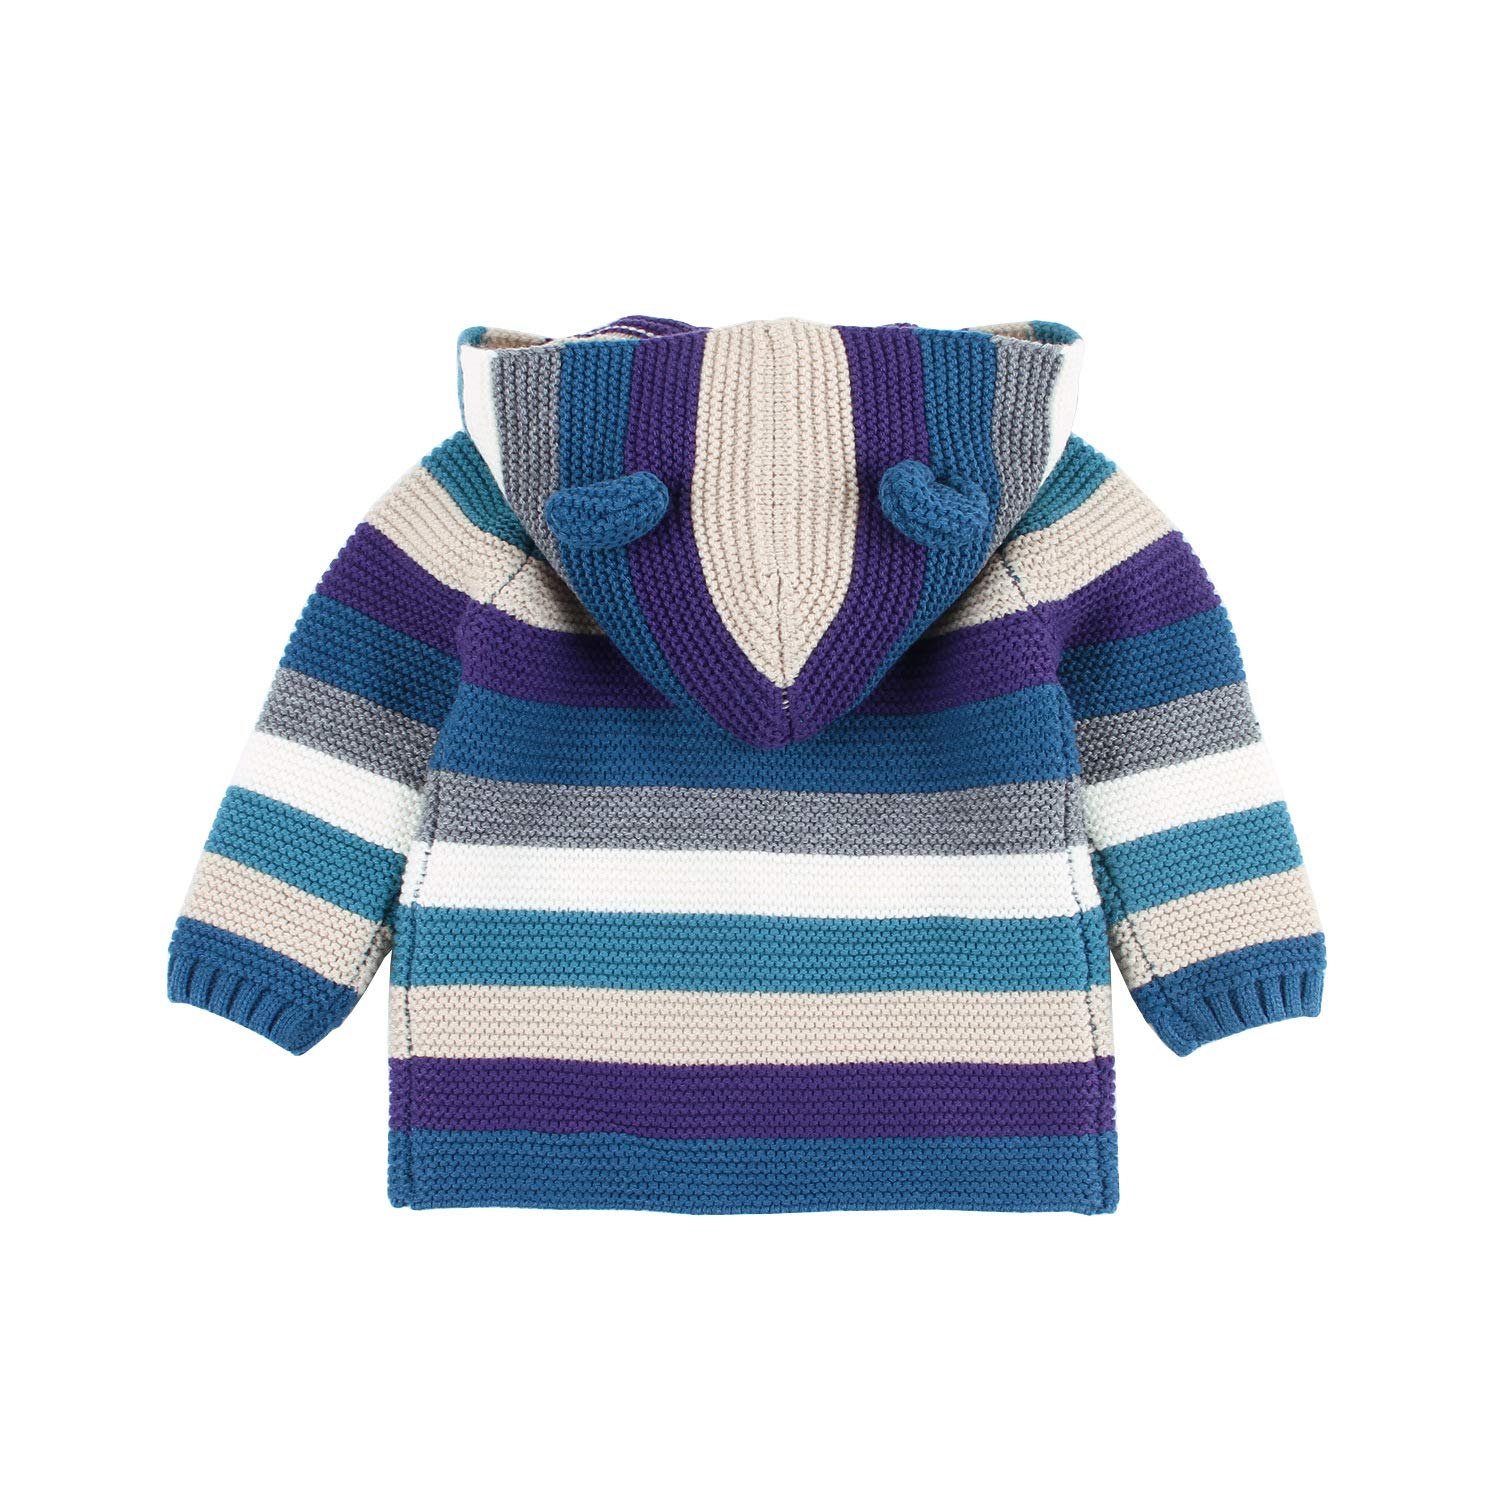 18d2dab44 Amazon.com   Fairy Baby Baby Boy Girl Knit Cardigan Sweater Jacket ...